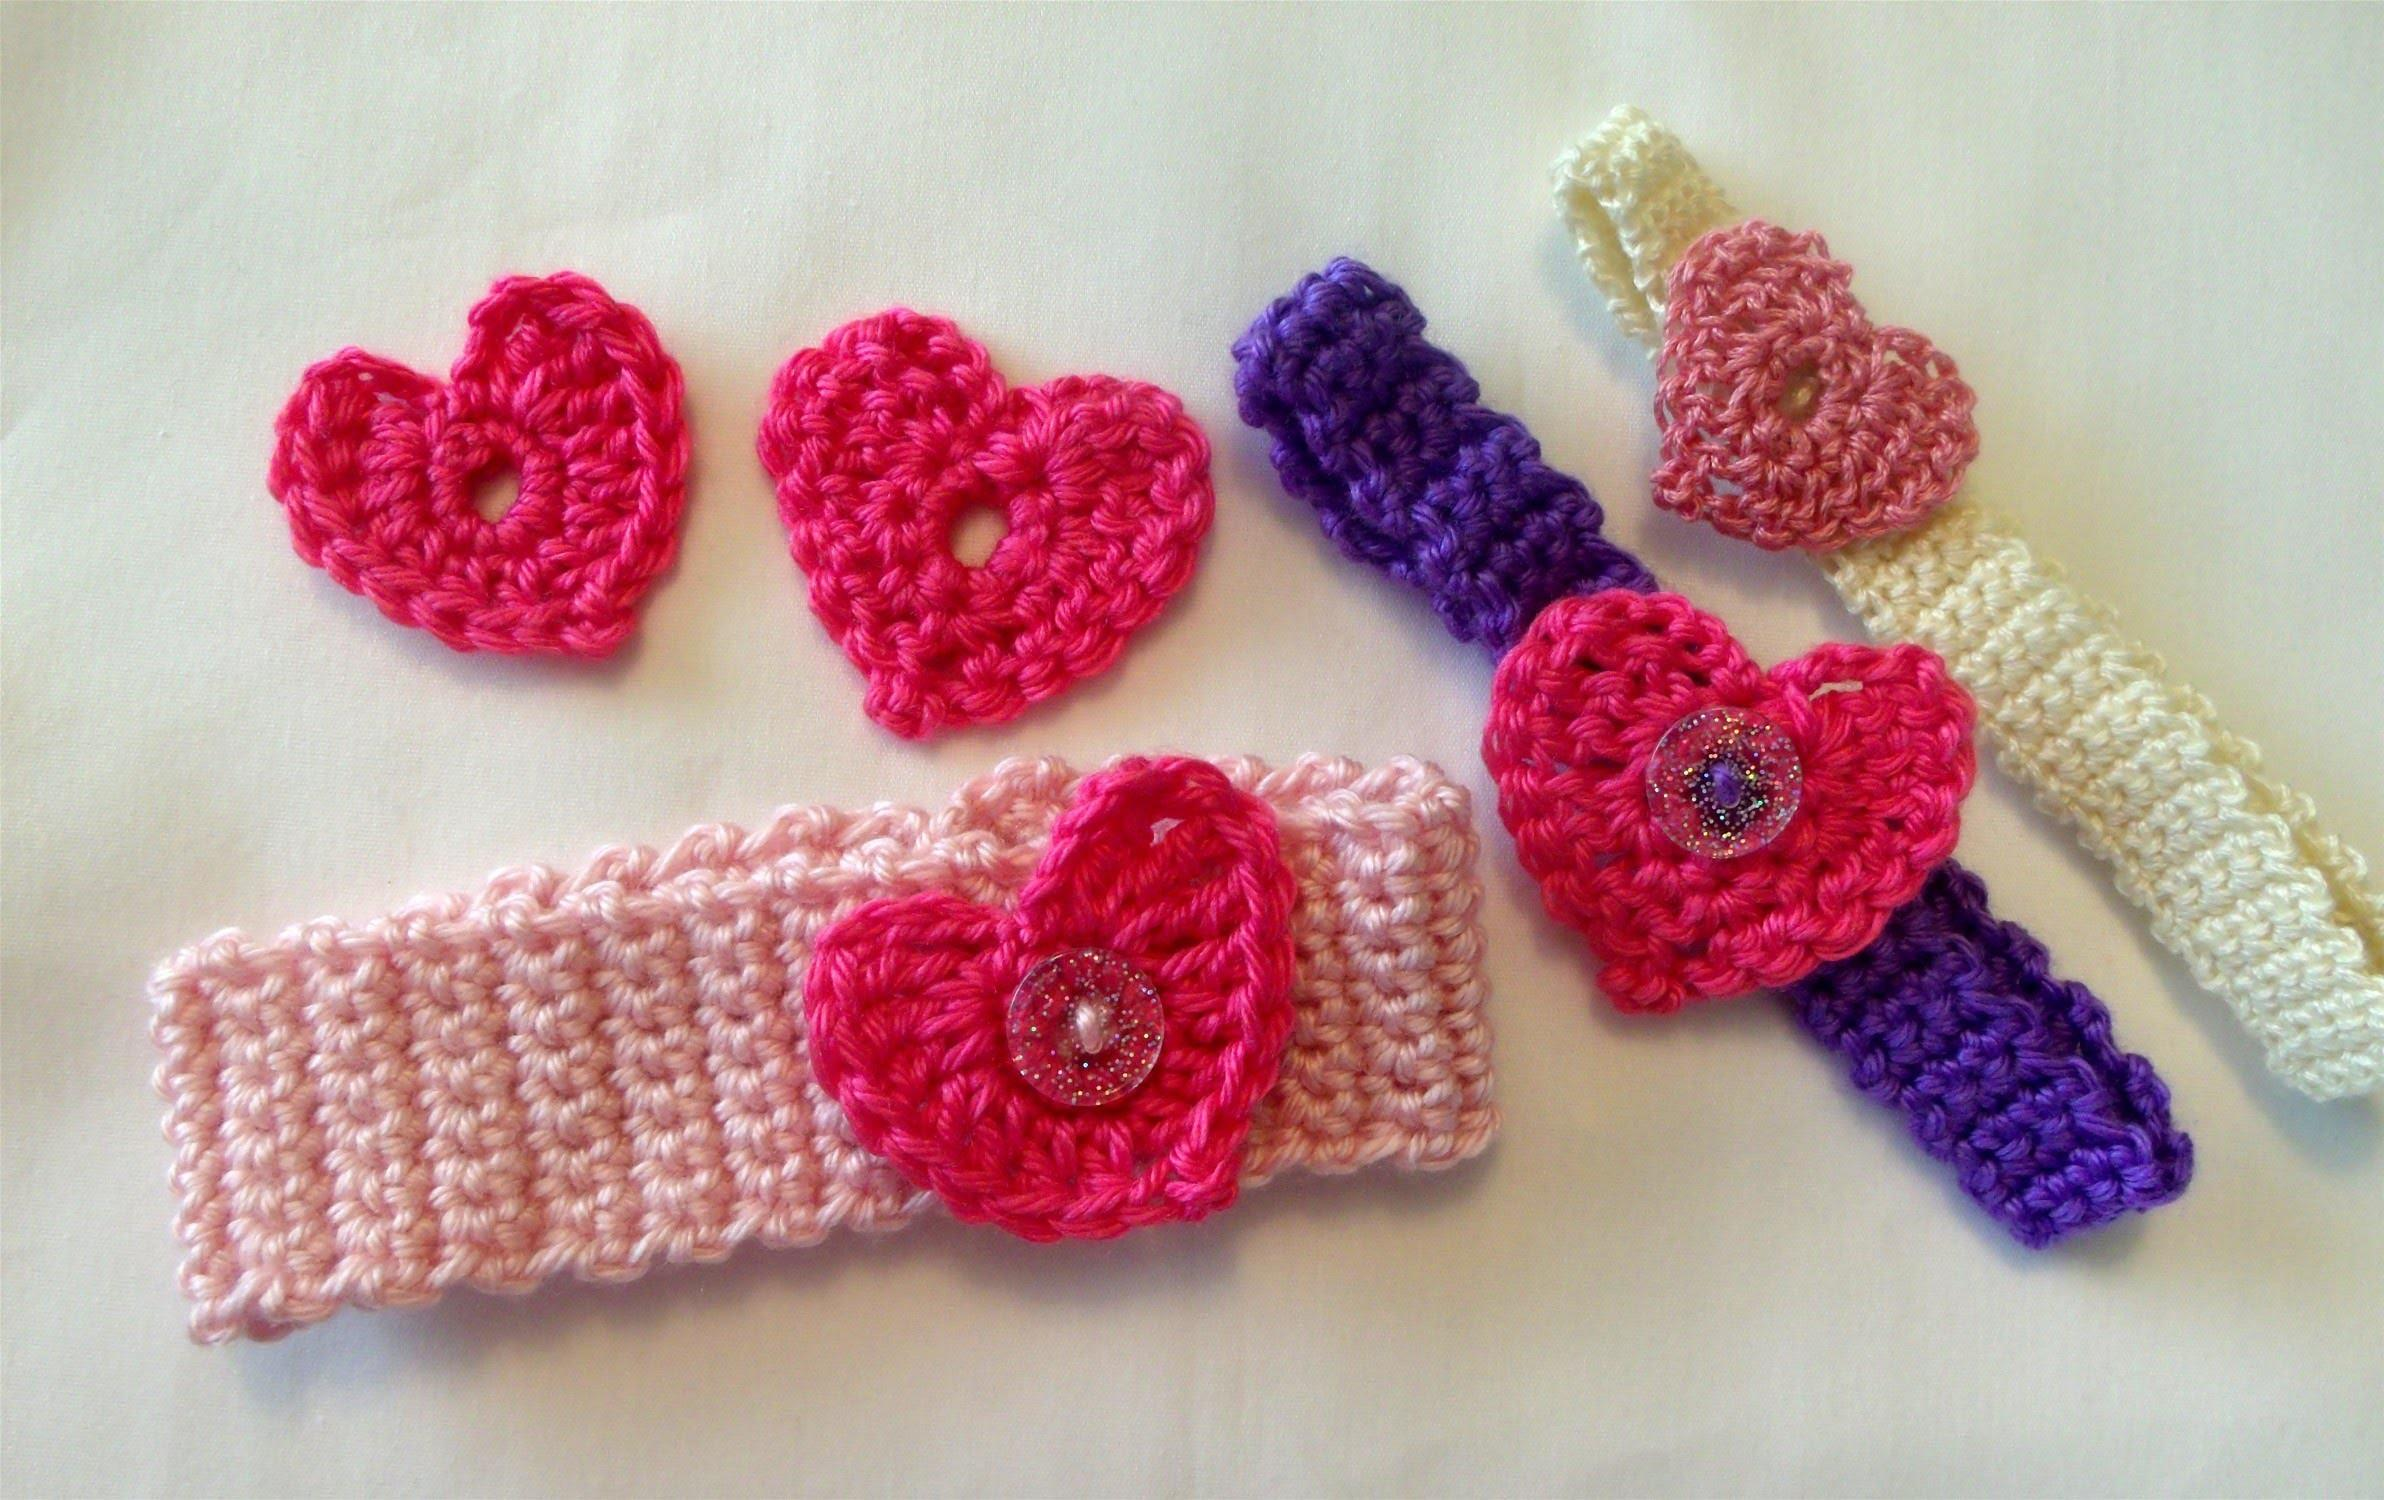 Crochet Heart Easy Valentines Day Crafts